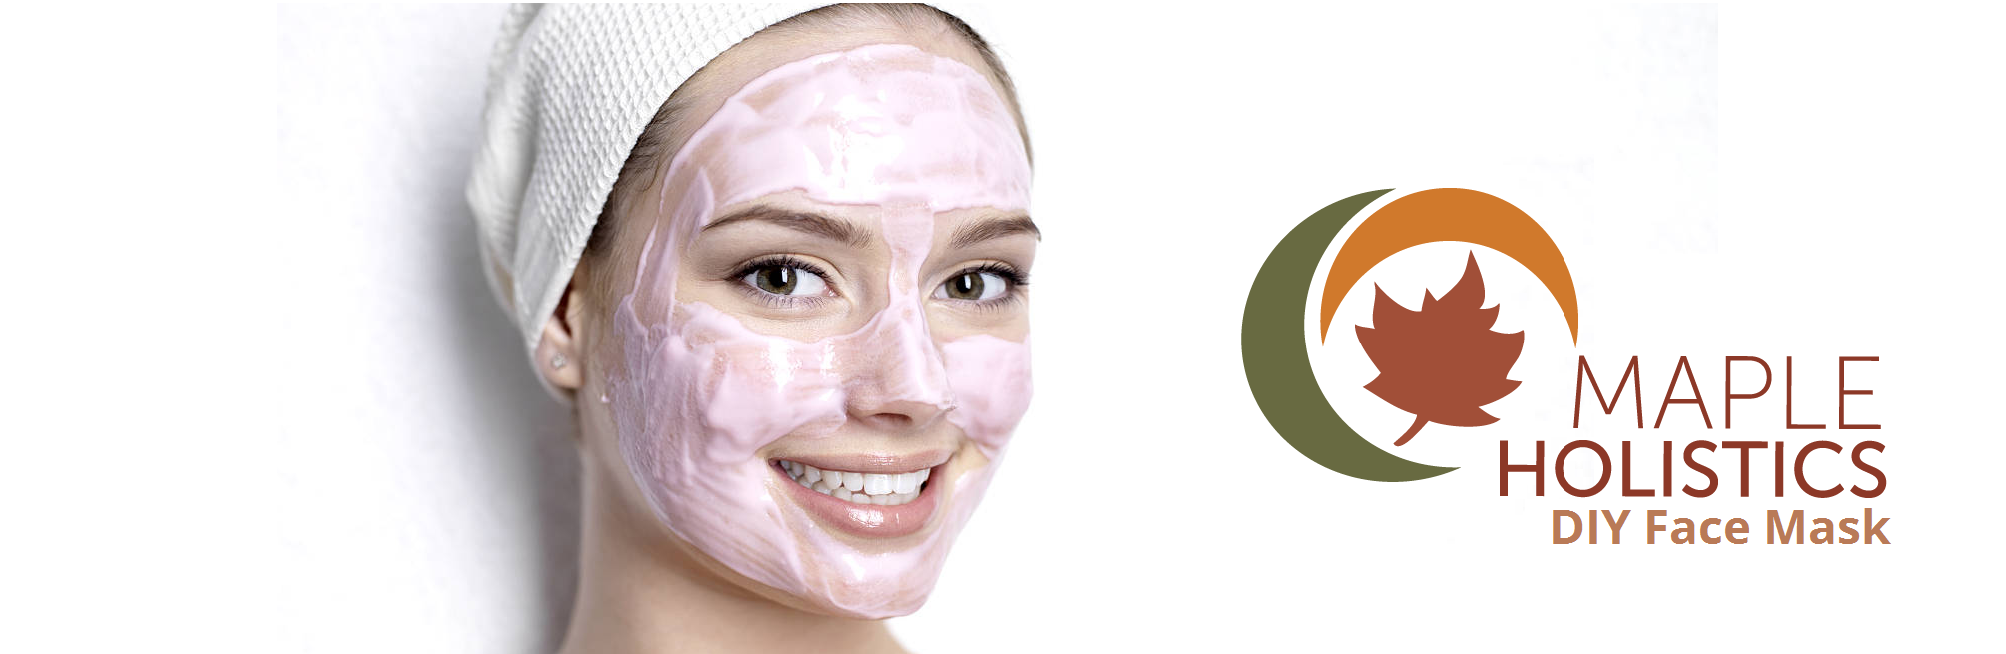 Diy Natural Face Mask Recipes And Guide Acne Dry Skin Oily Skin